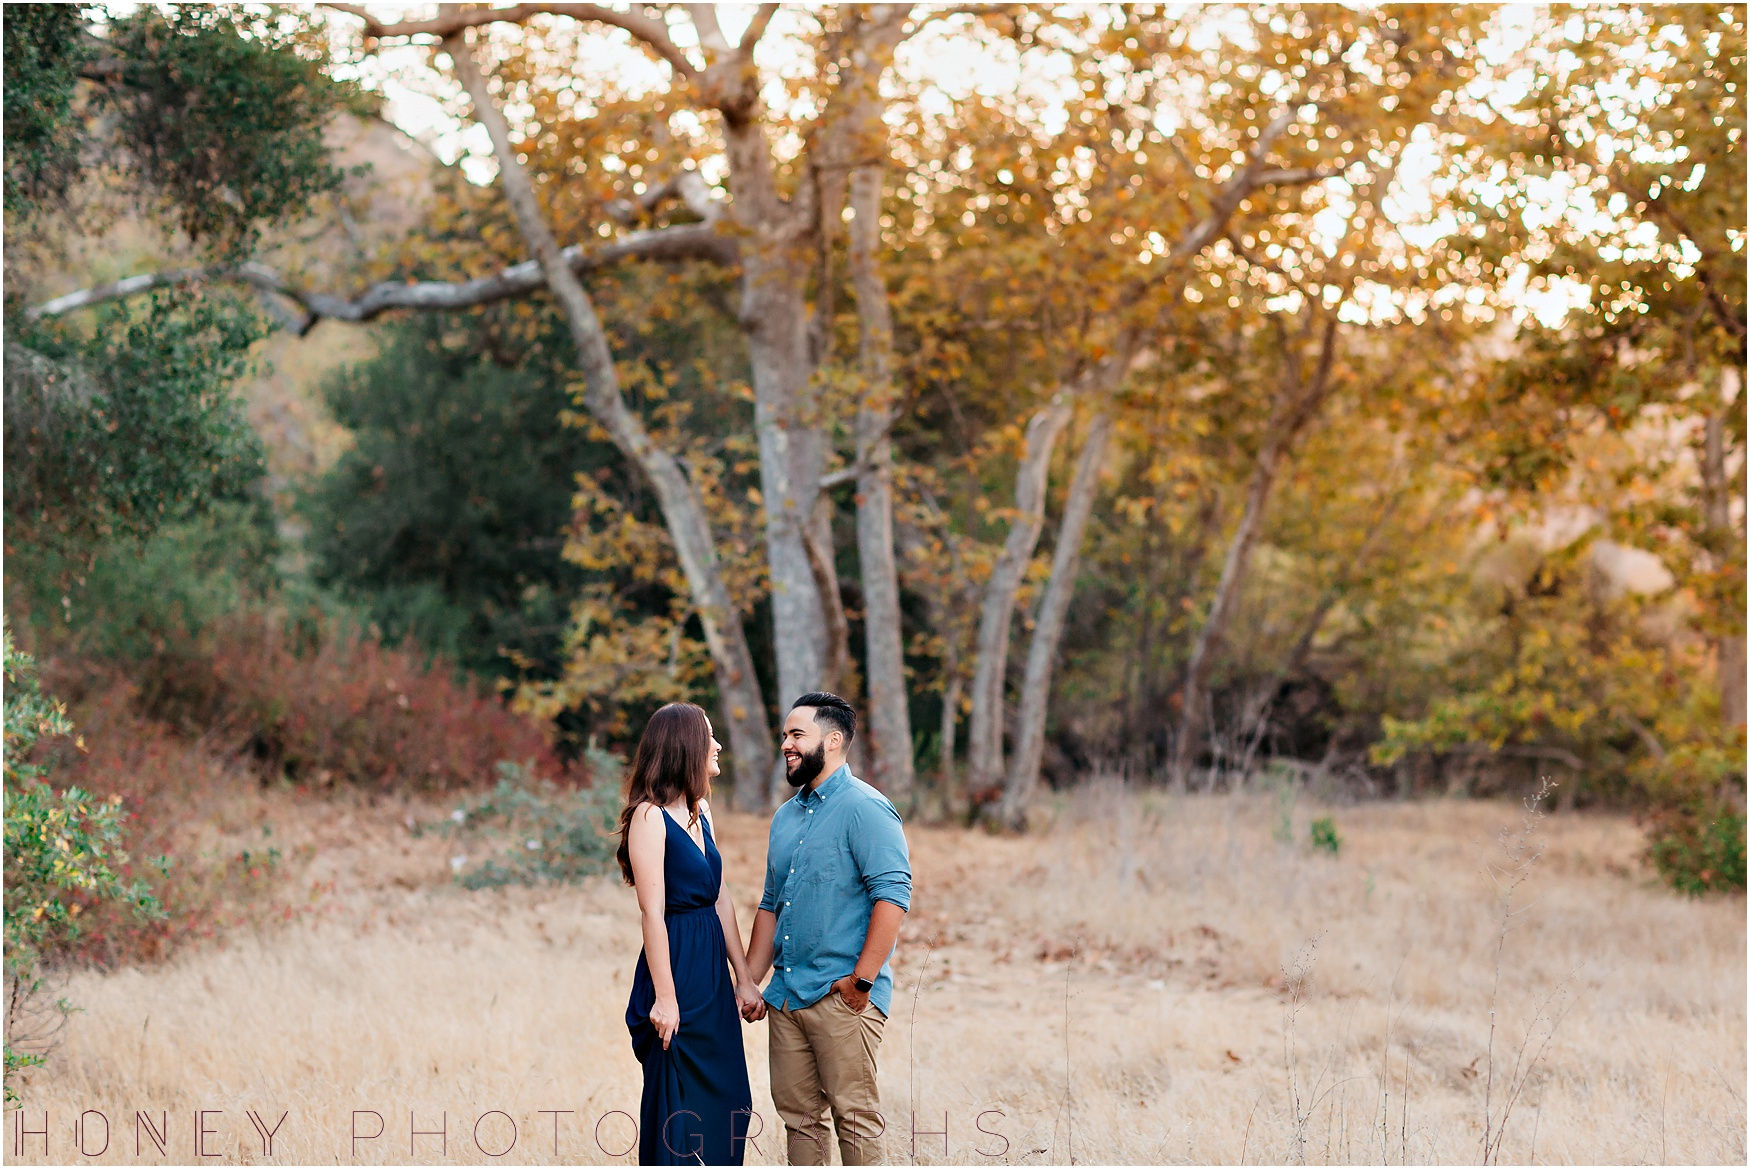 marian_bear_sunset_woods_san_diego_engagement020.jpg